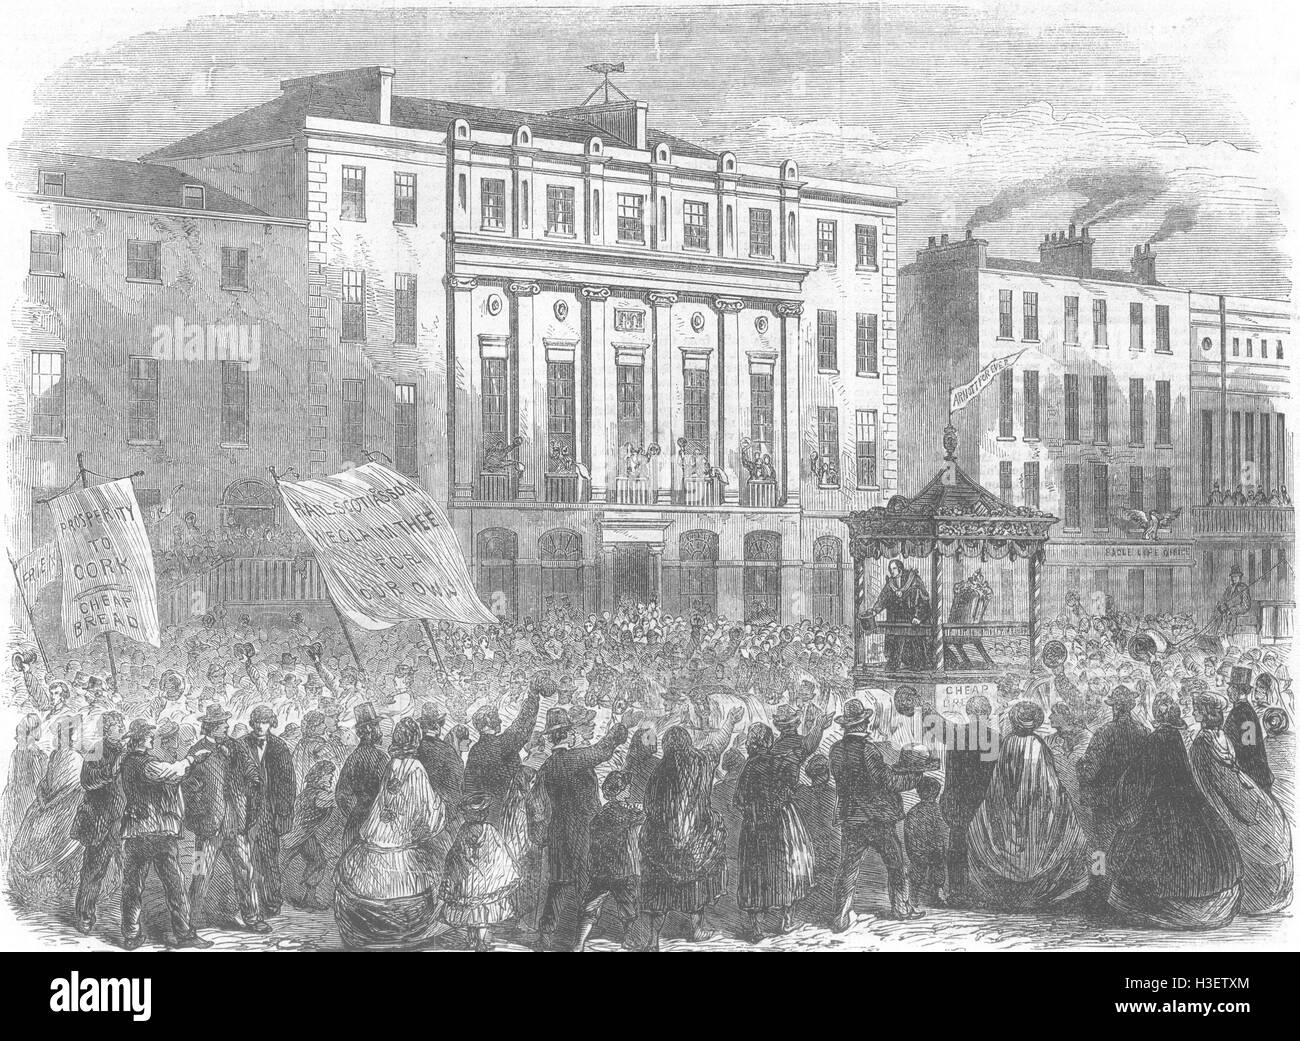 IRELAND Chairing mayor, completion of his term, Cork 1862. Illustrated London News - Stock Image